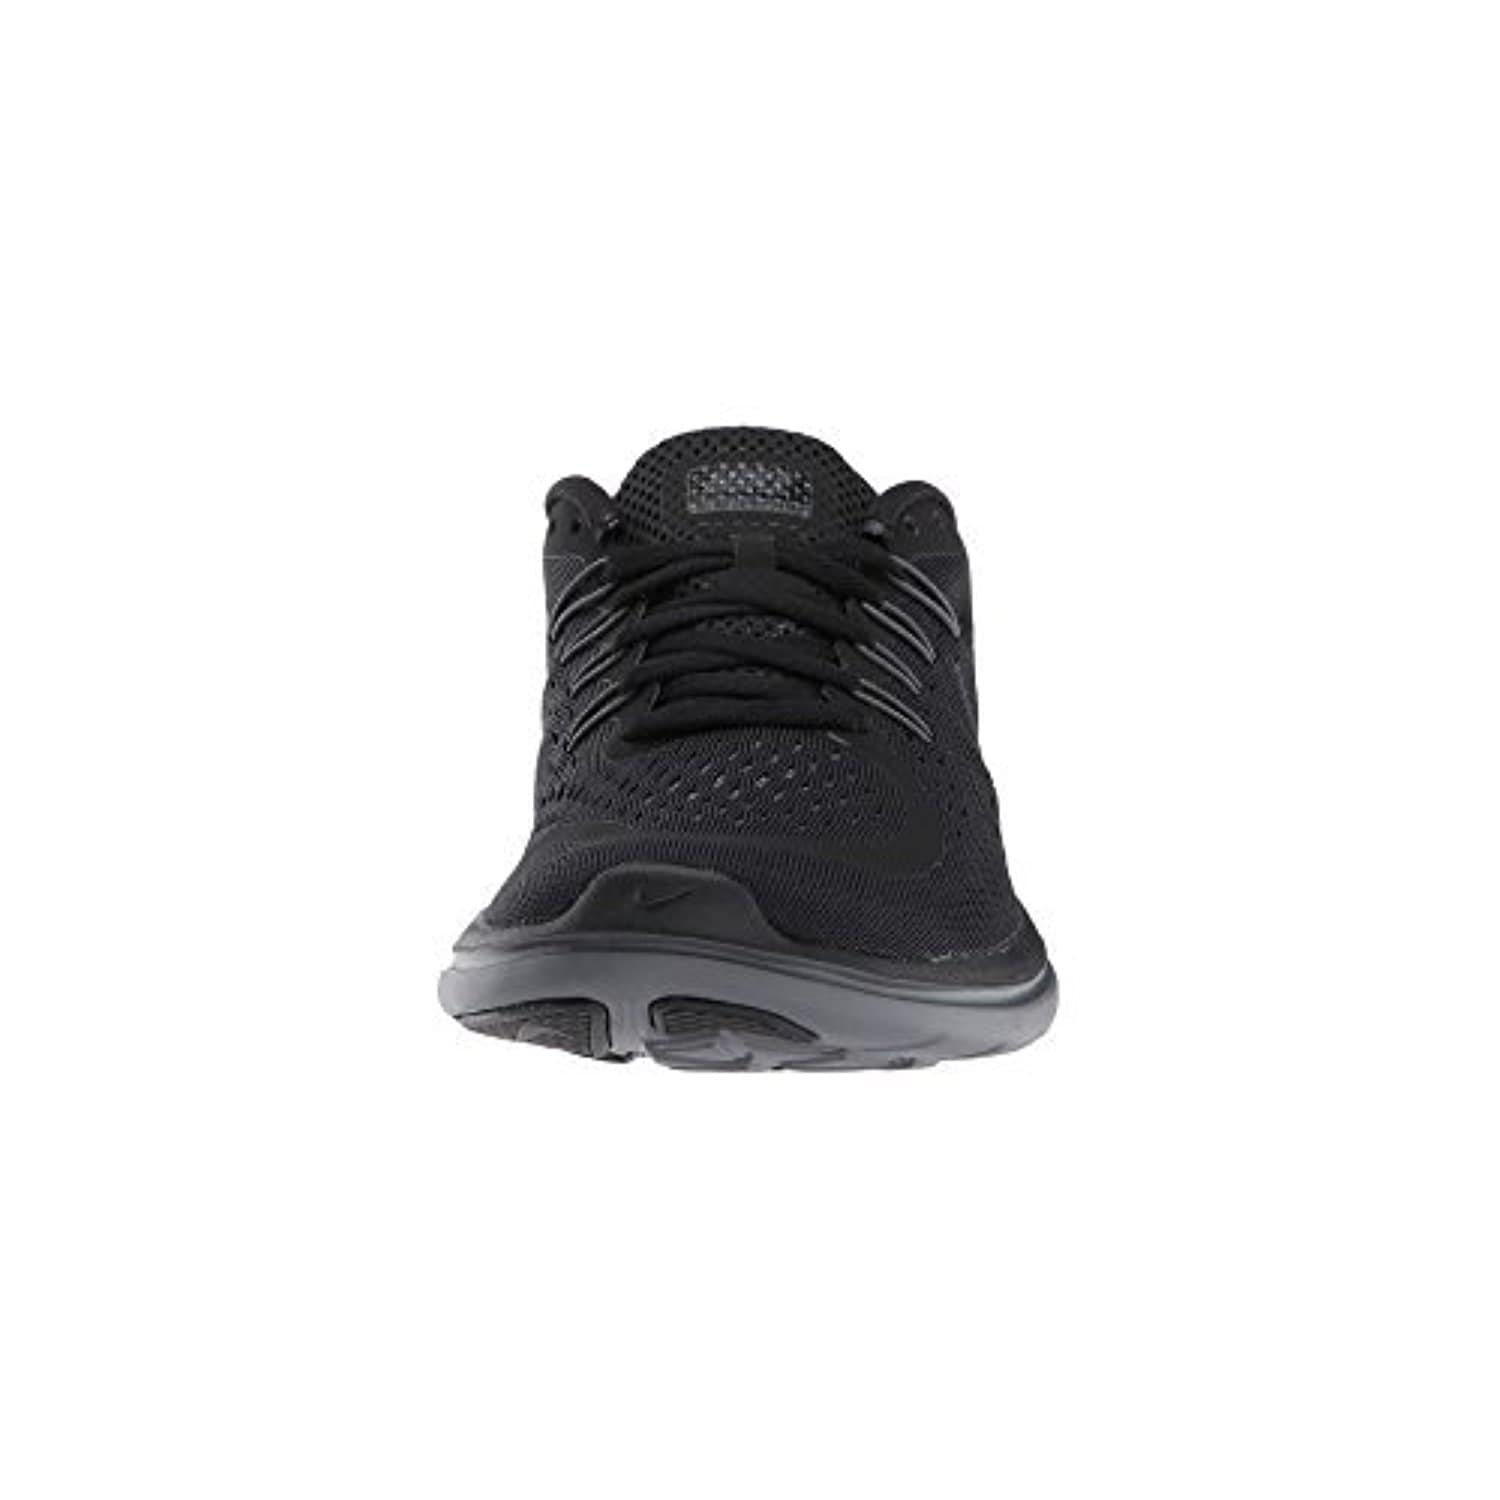 7bdc87d9af2d Shop Nike Flex RN 2017 Black Metallic Hematite Anthracite Dark Grey Women s  Running Shoes - Free Shipping Today - Overstock - 18280063